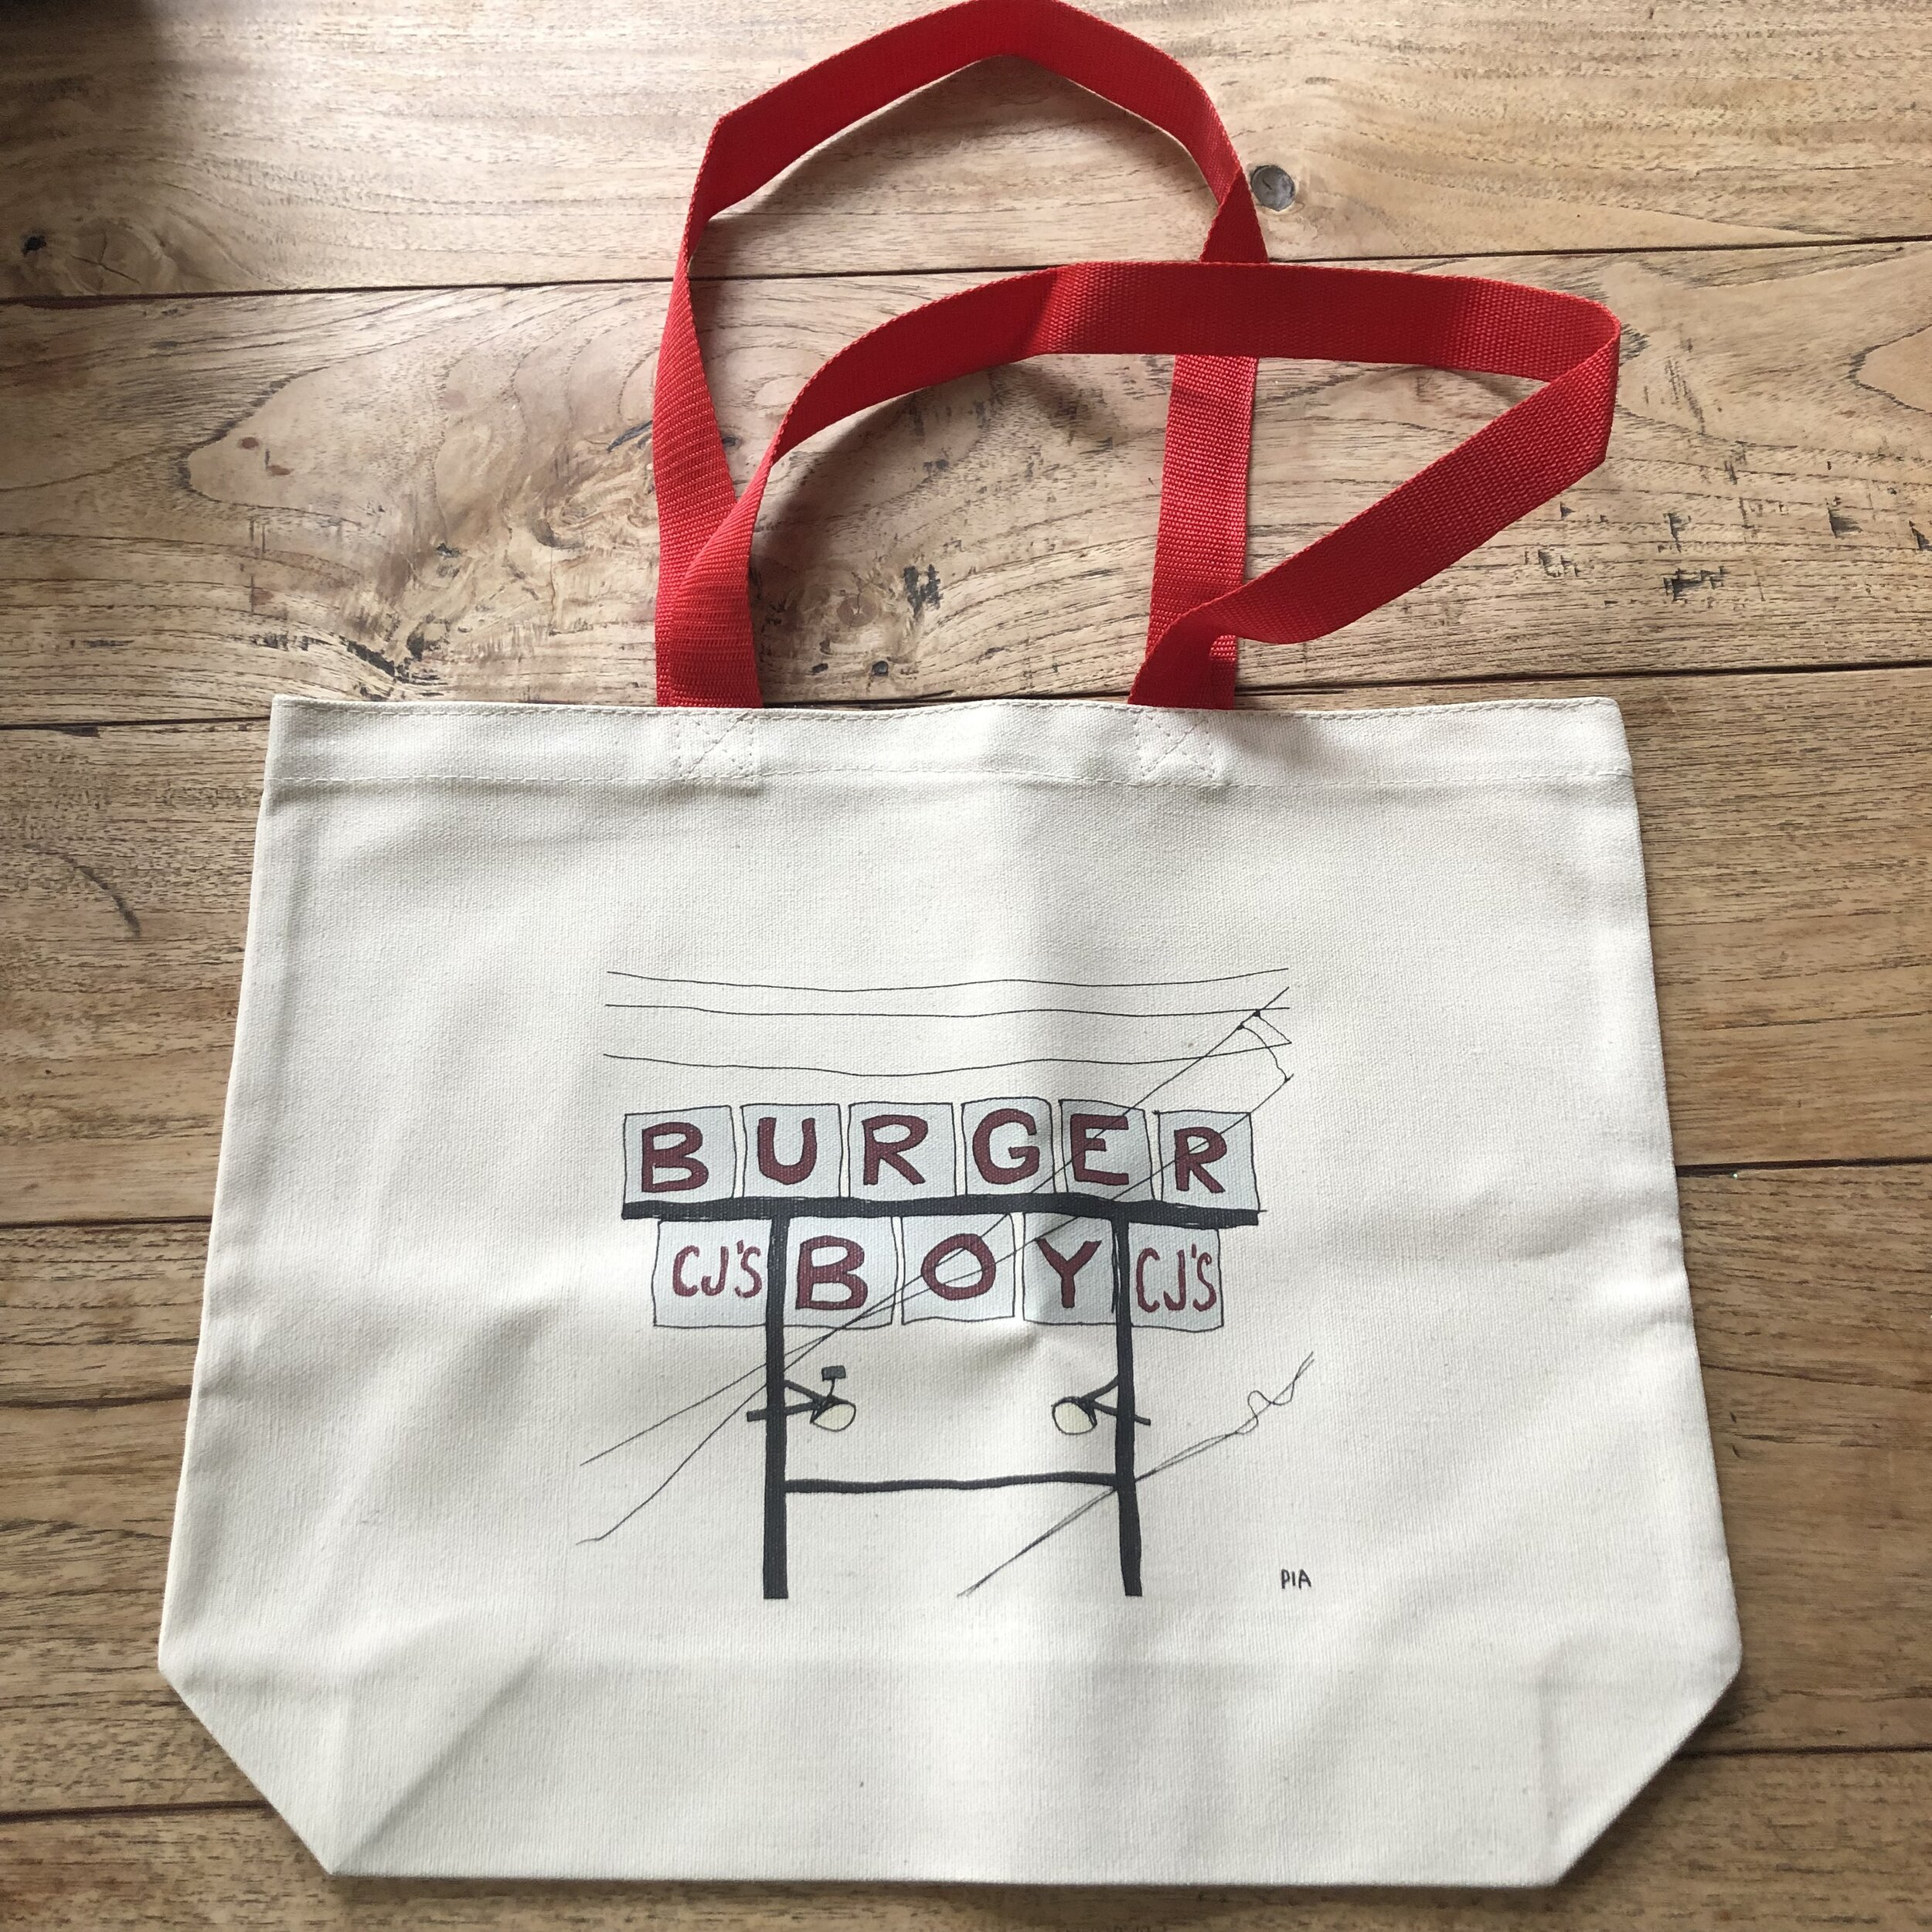 Burger Boy Bag, 2019, email to purchase, $20